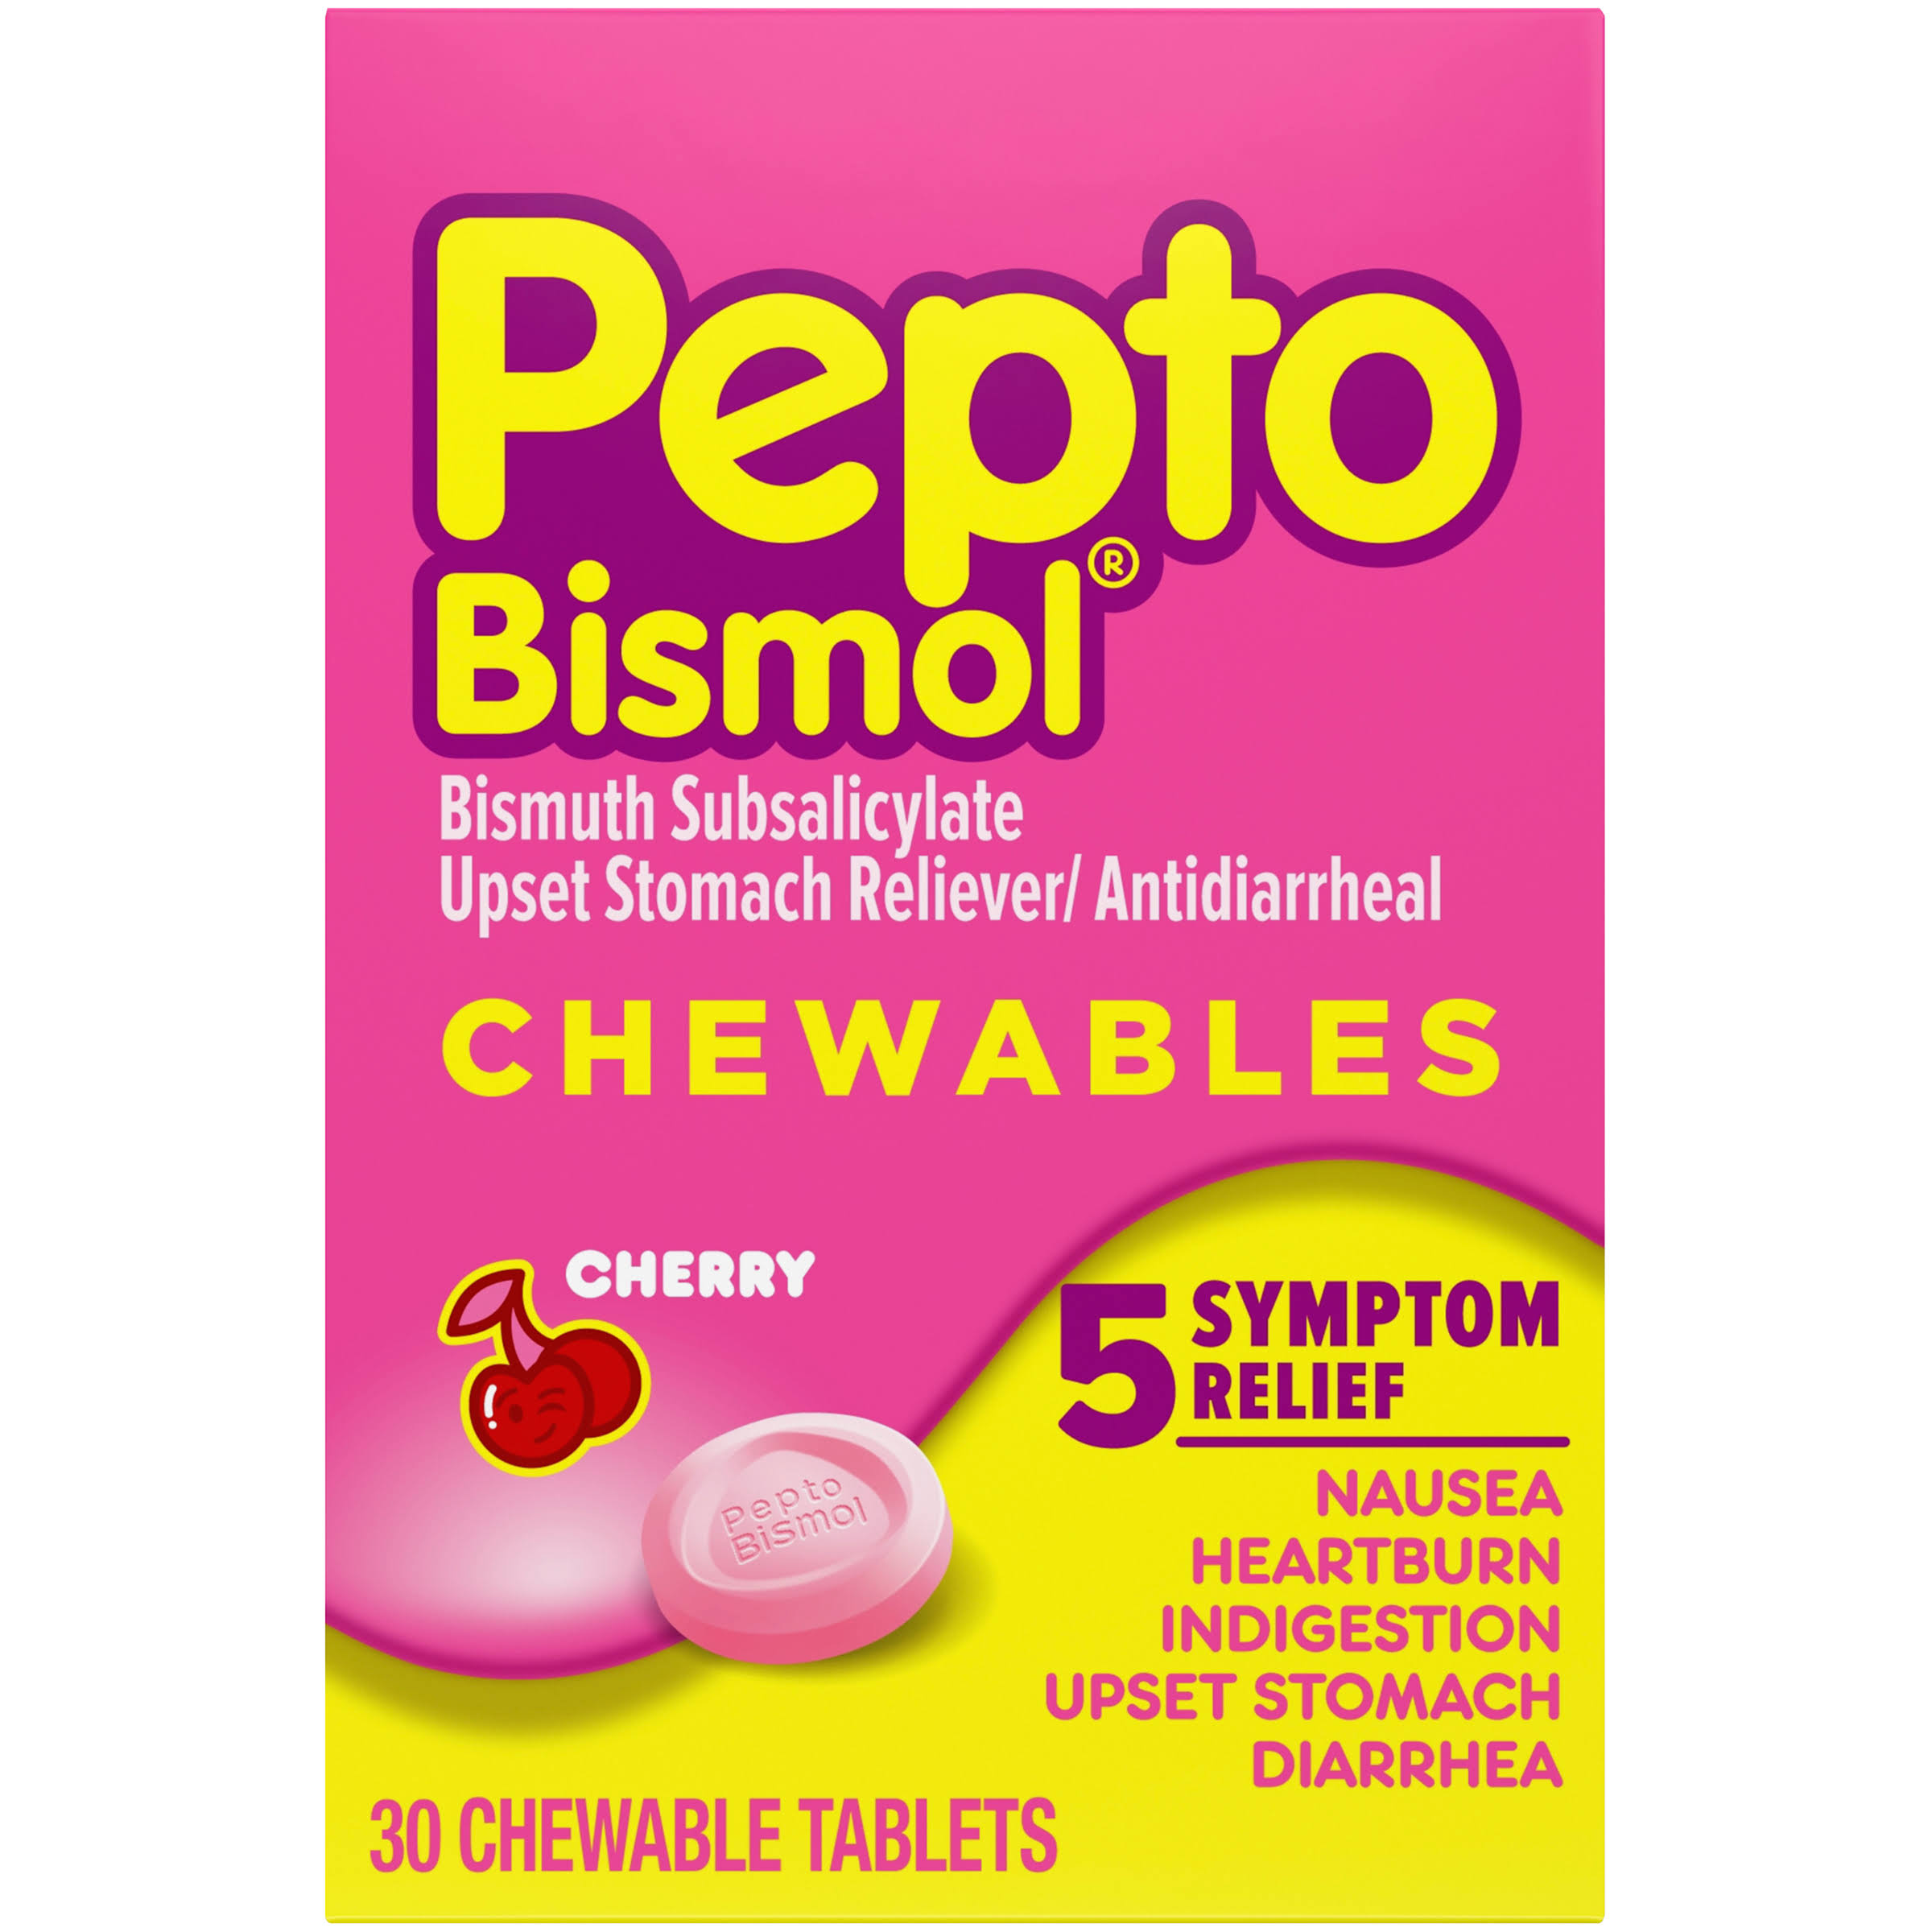 Pepto Bismol 5 Symptoms Digestive Relief Chewable Tablets - Cherry, 30ct